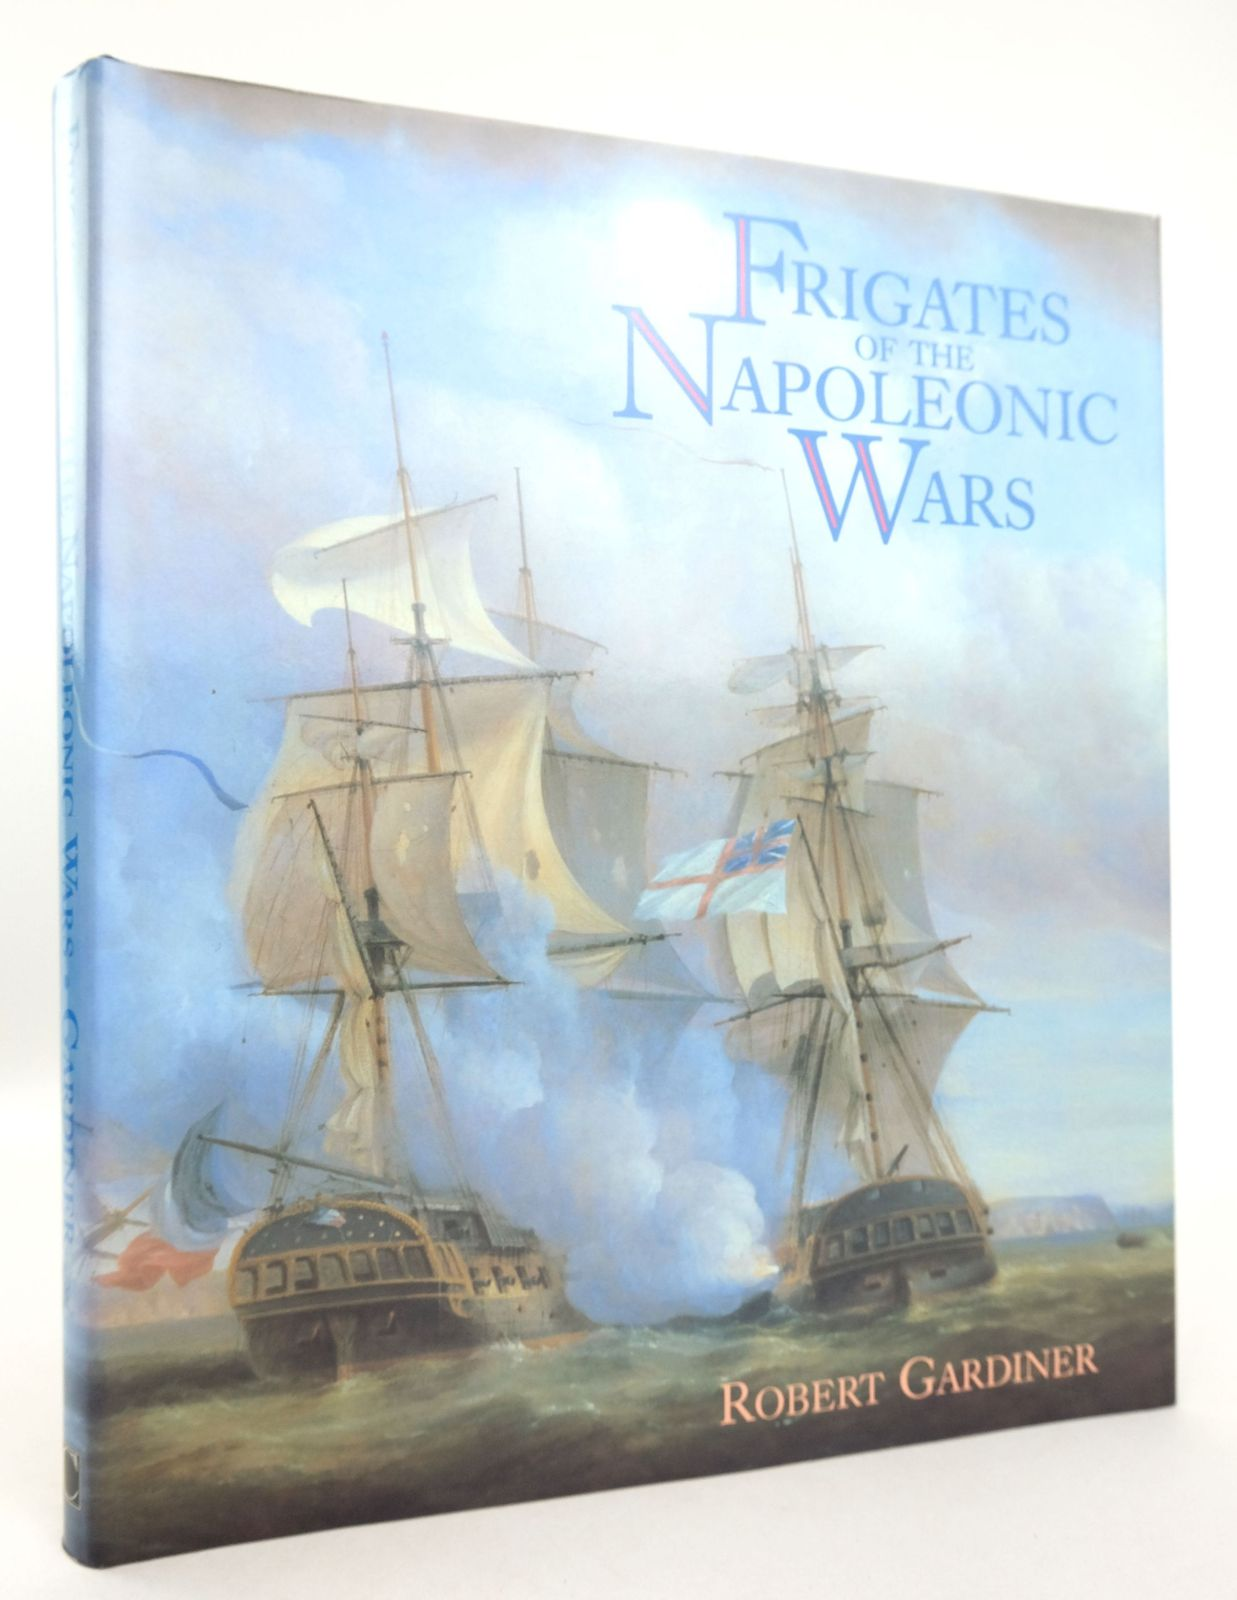 Photo of FRIGATES OF THE NAPOLEONIC WARS- Stock Number: 1819324